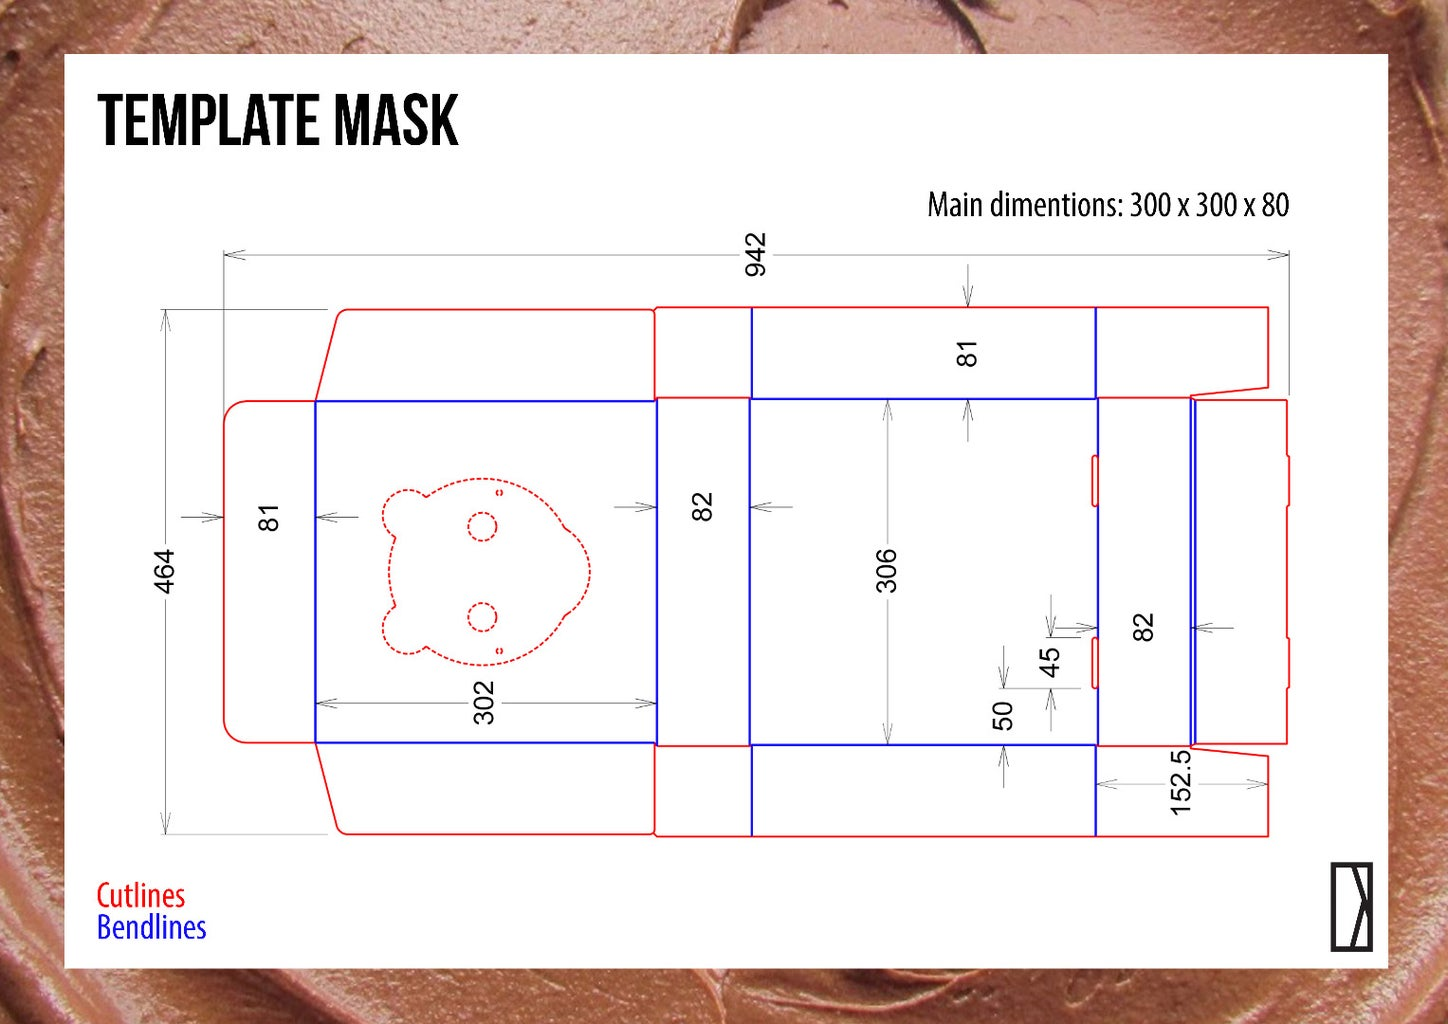 Material List & Templates